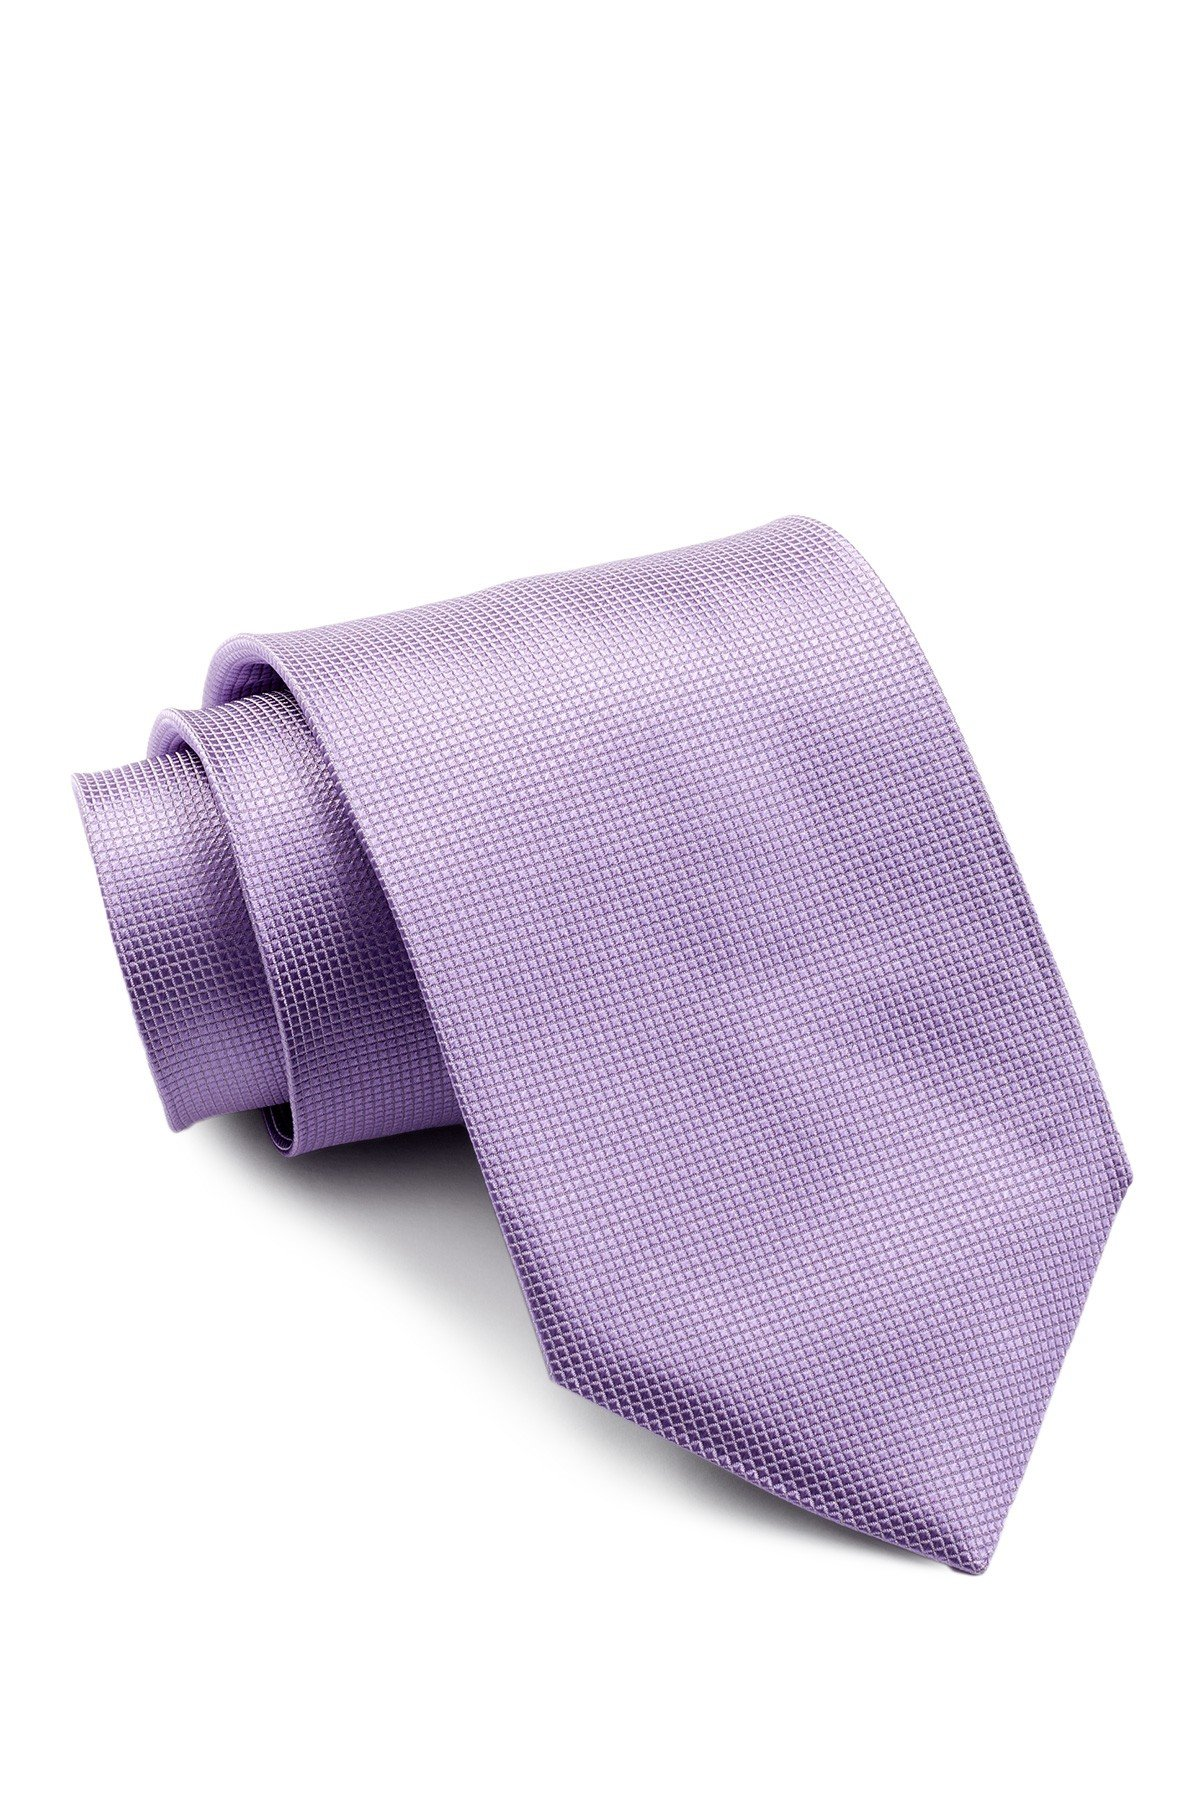 Boss Hugo Boss Micro Check Italian Silk Tie, Light-purple 50242433